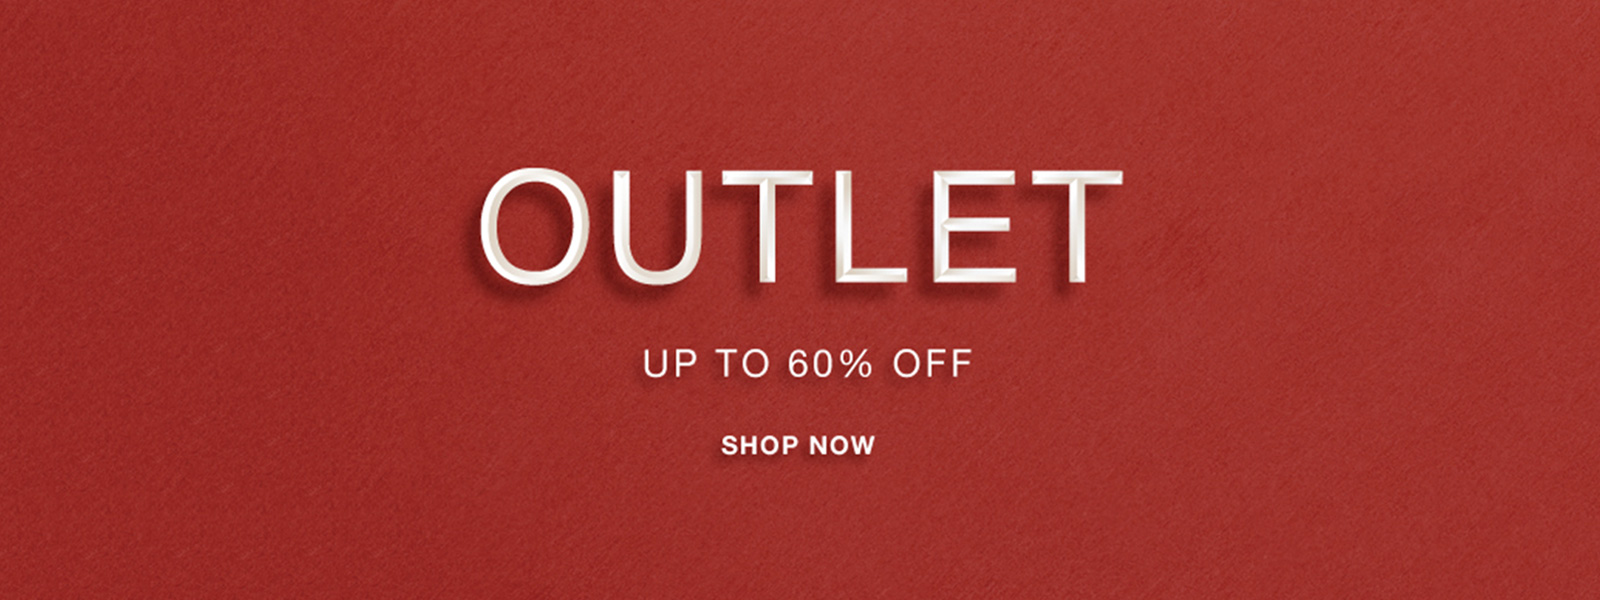 Outlet Up To 60% OFF